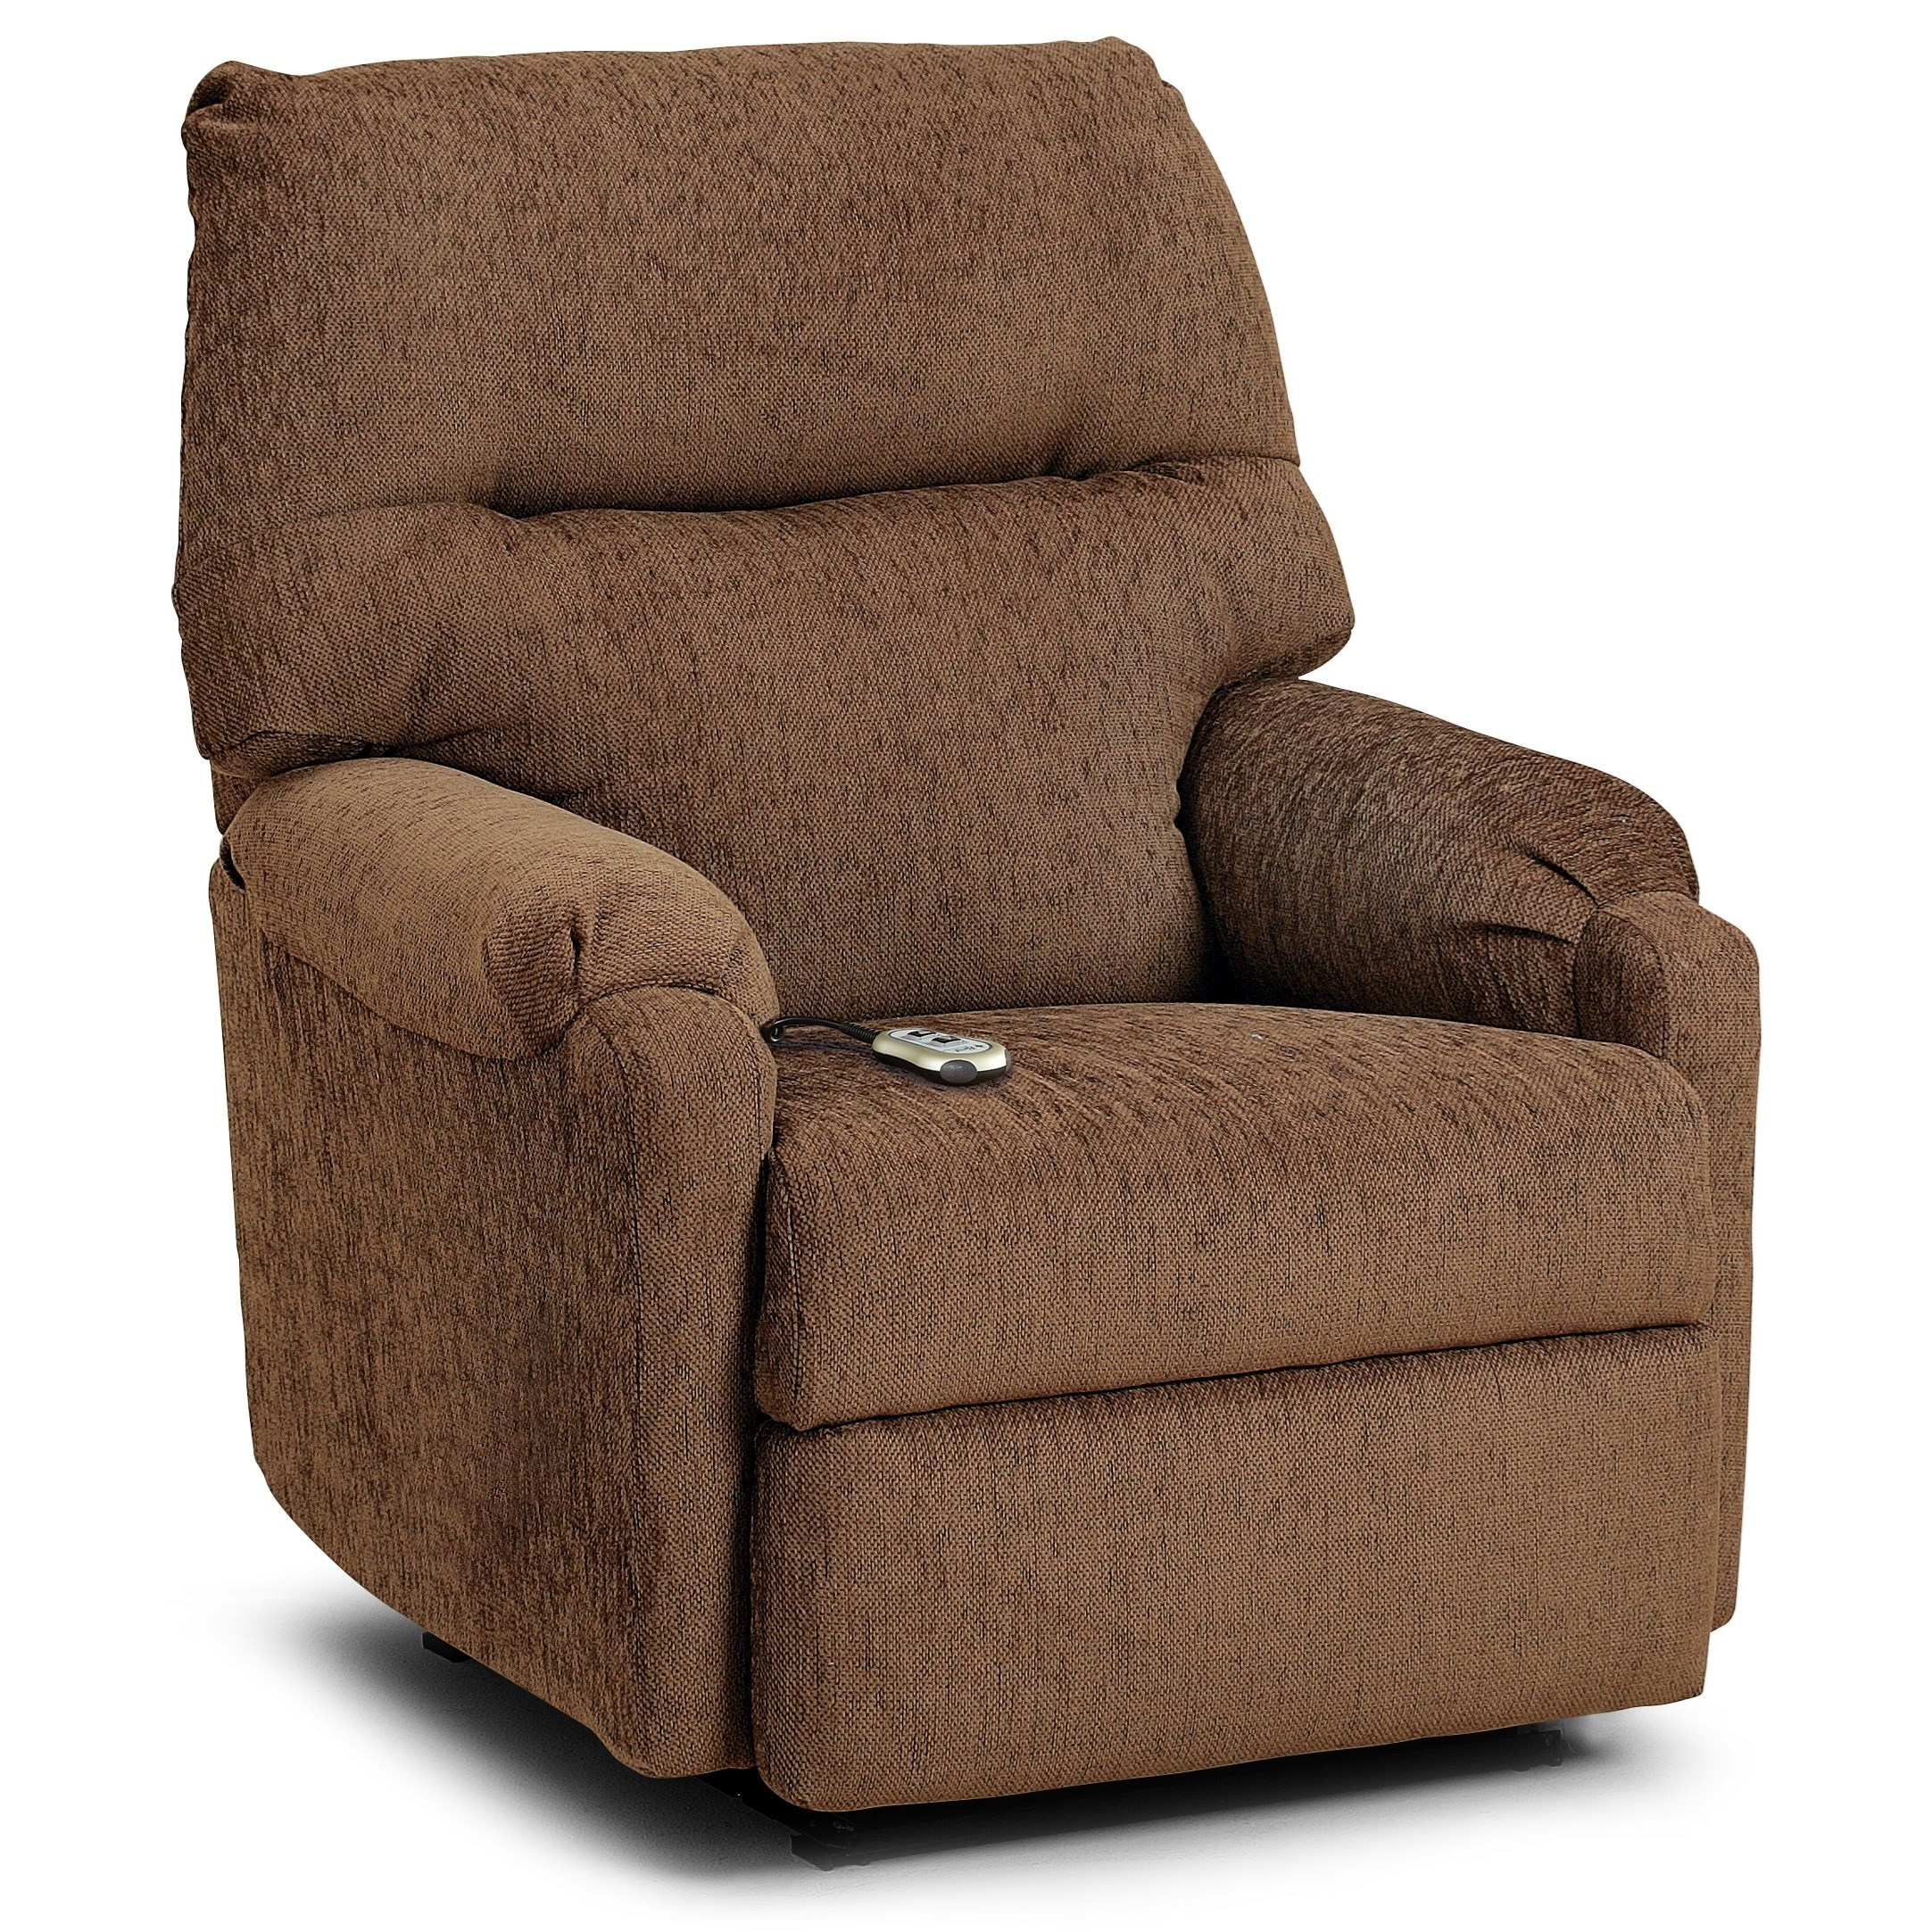 Best Home Furnishings Recliners - Petite JoJo Power Lift Recliner - Item Number: 1AW31